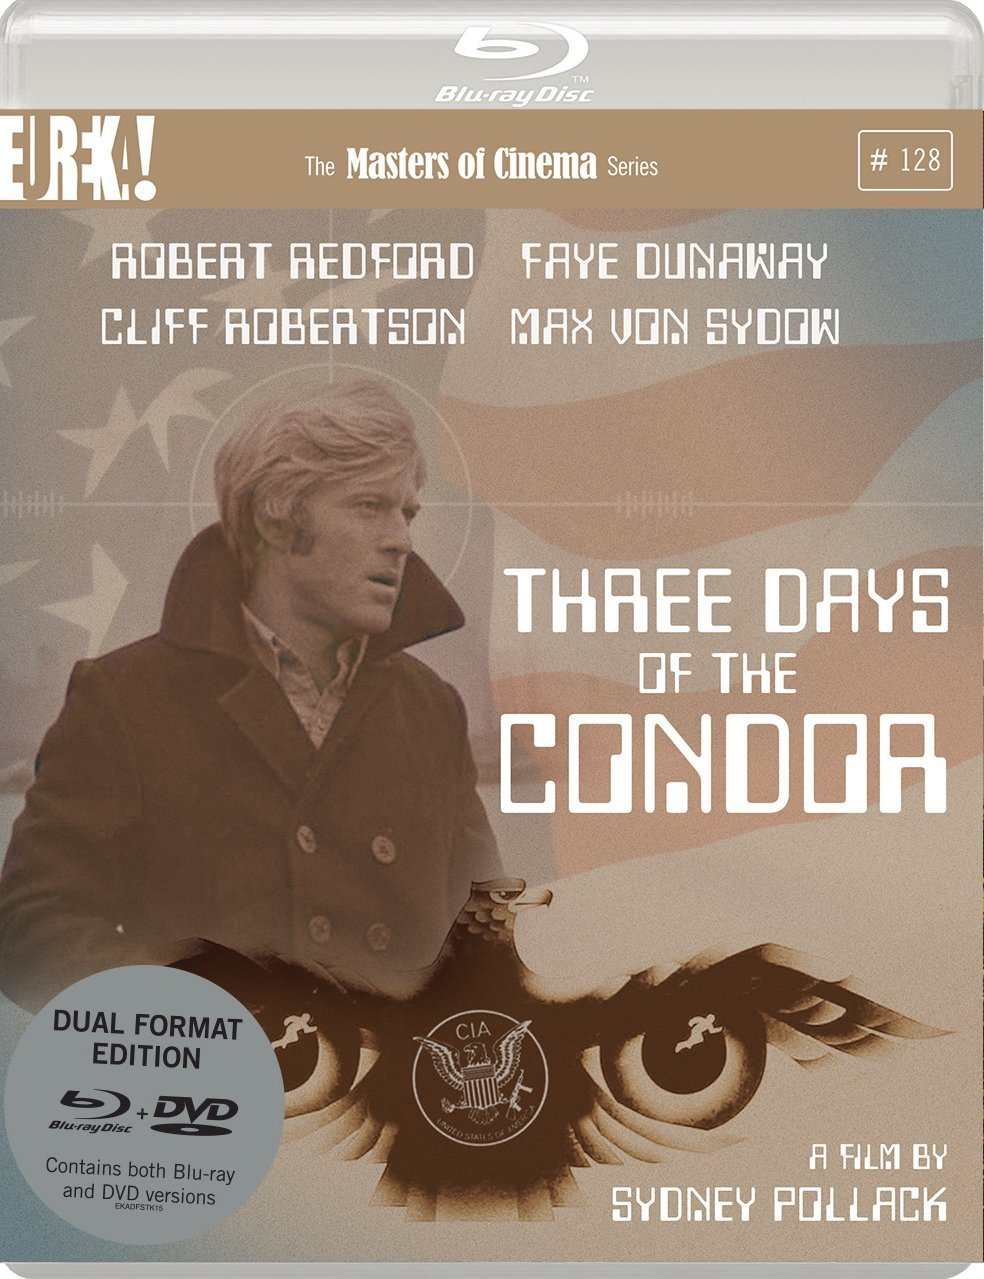 Buy Three Days of the Condor (Dual Format Edition)